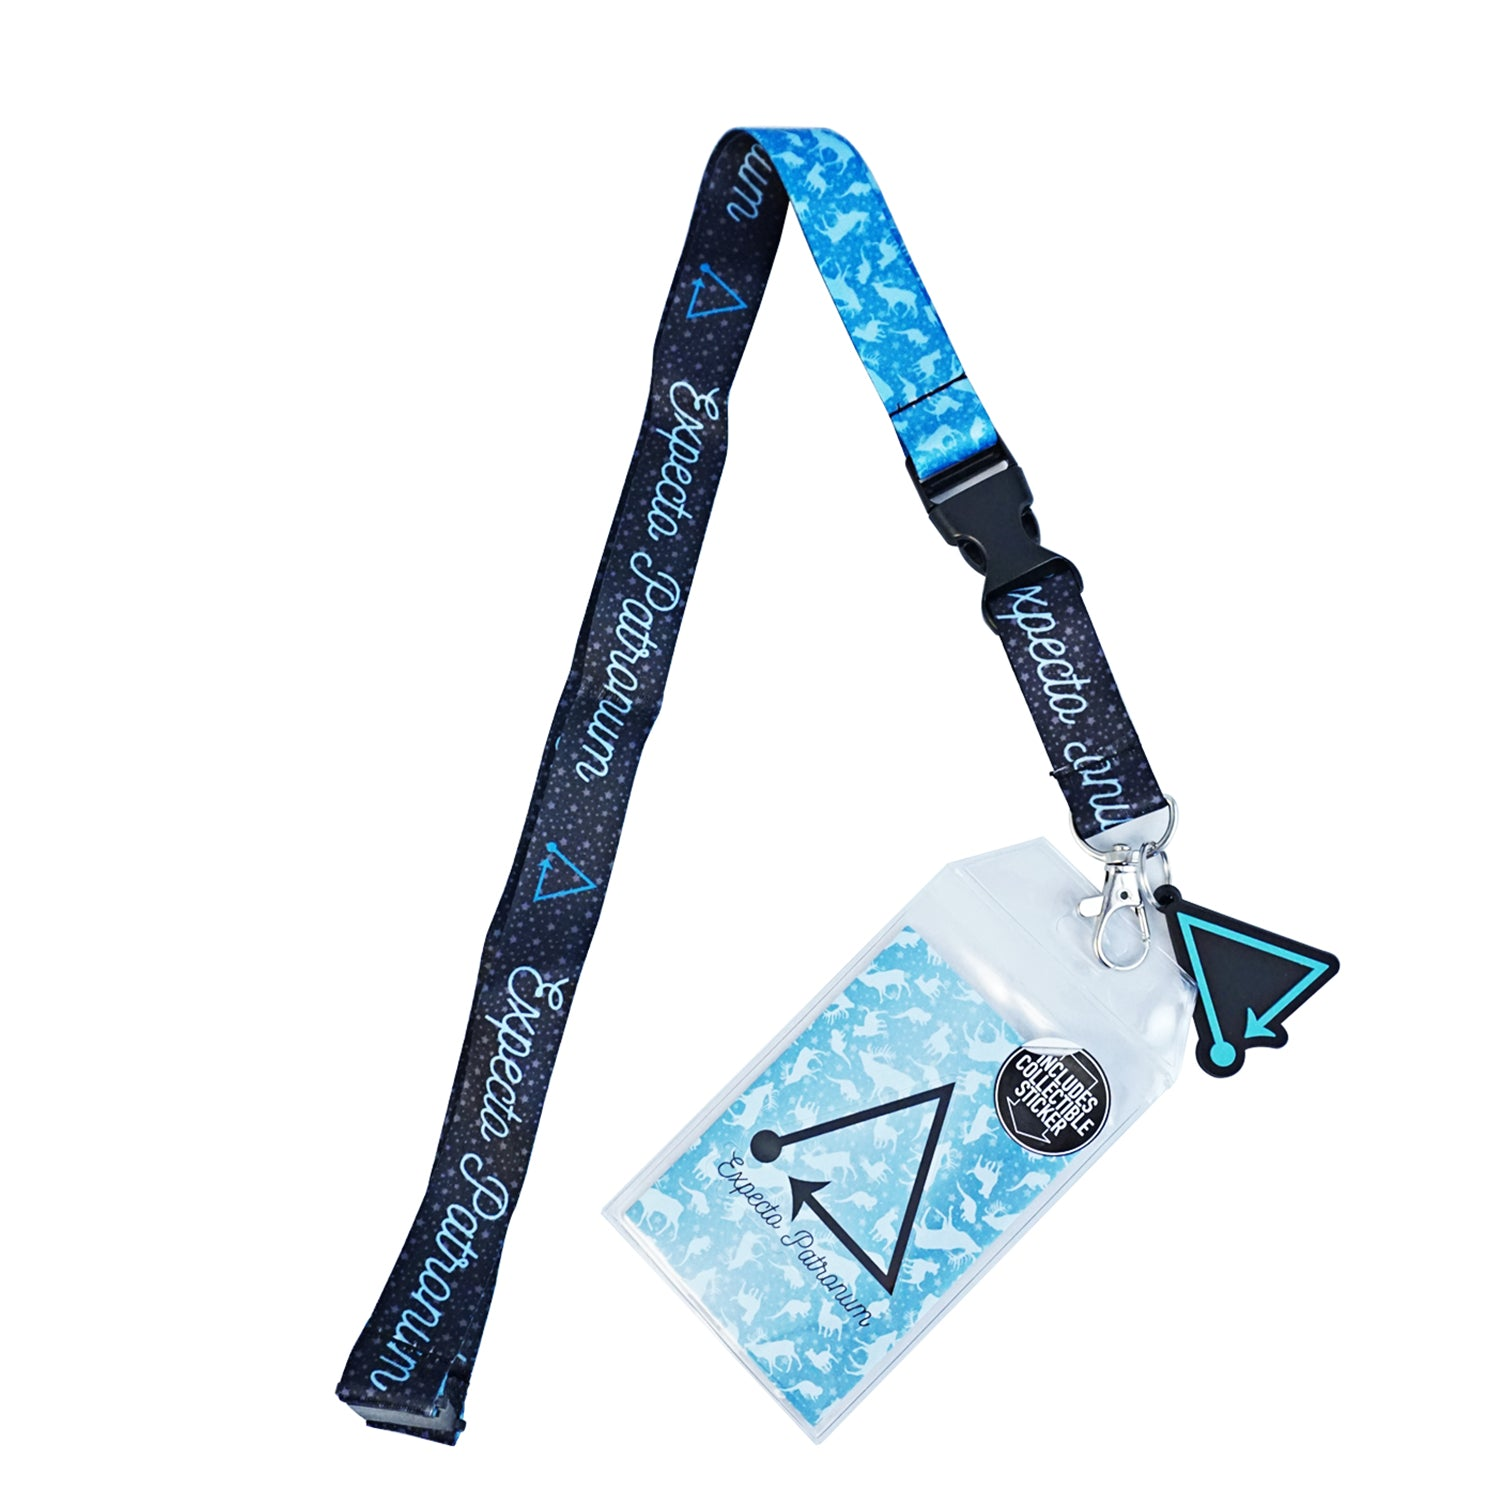 Harry Potter - Expecto Patronum Breakaway Lanyard with Charm and ID Holder